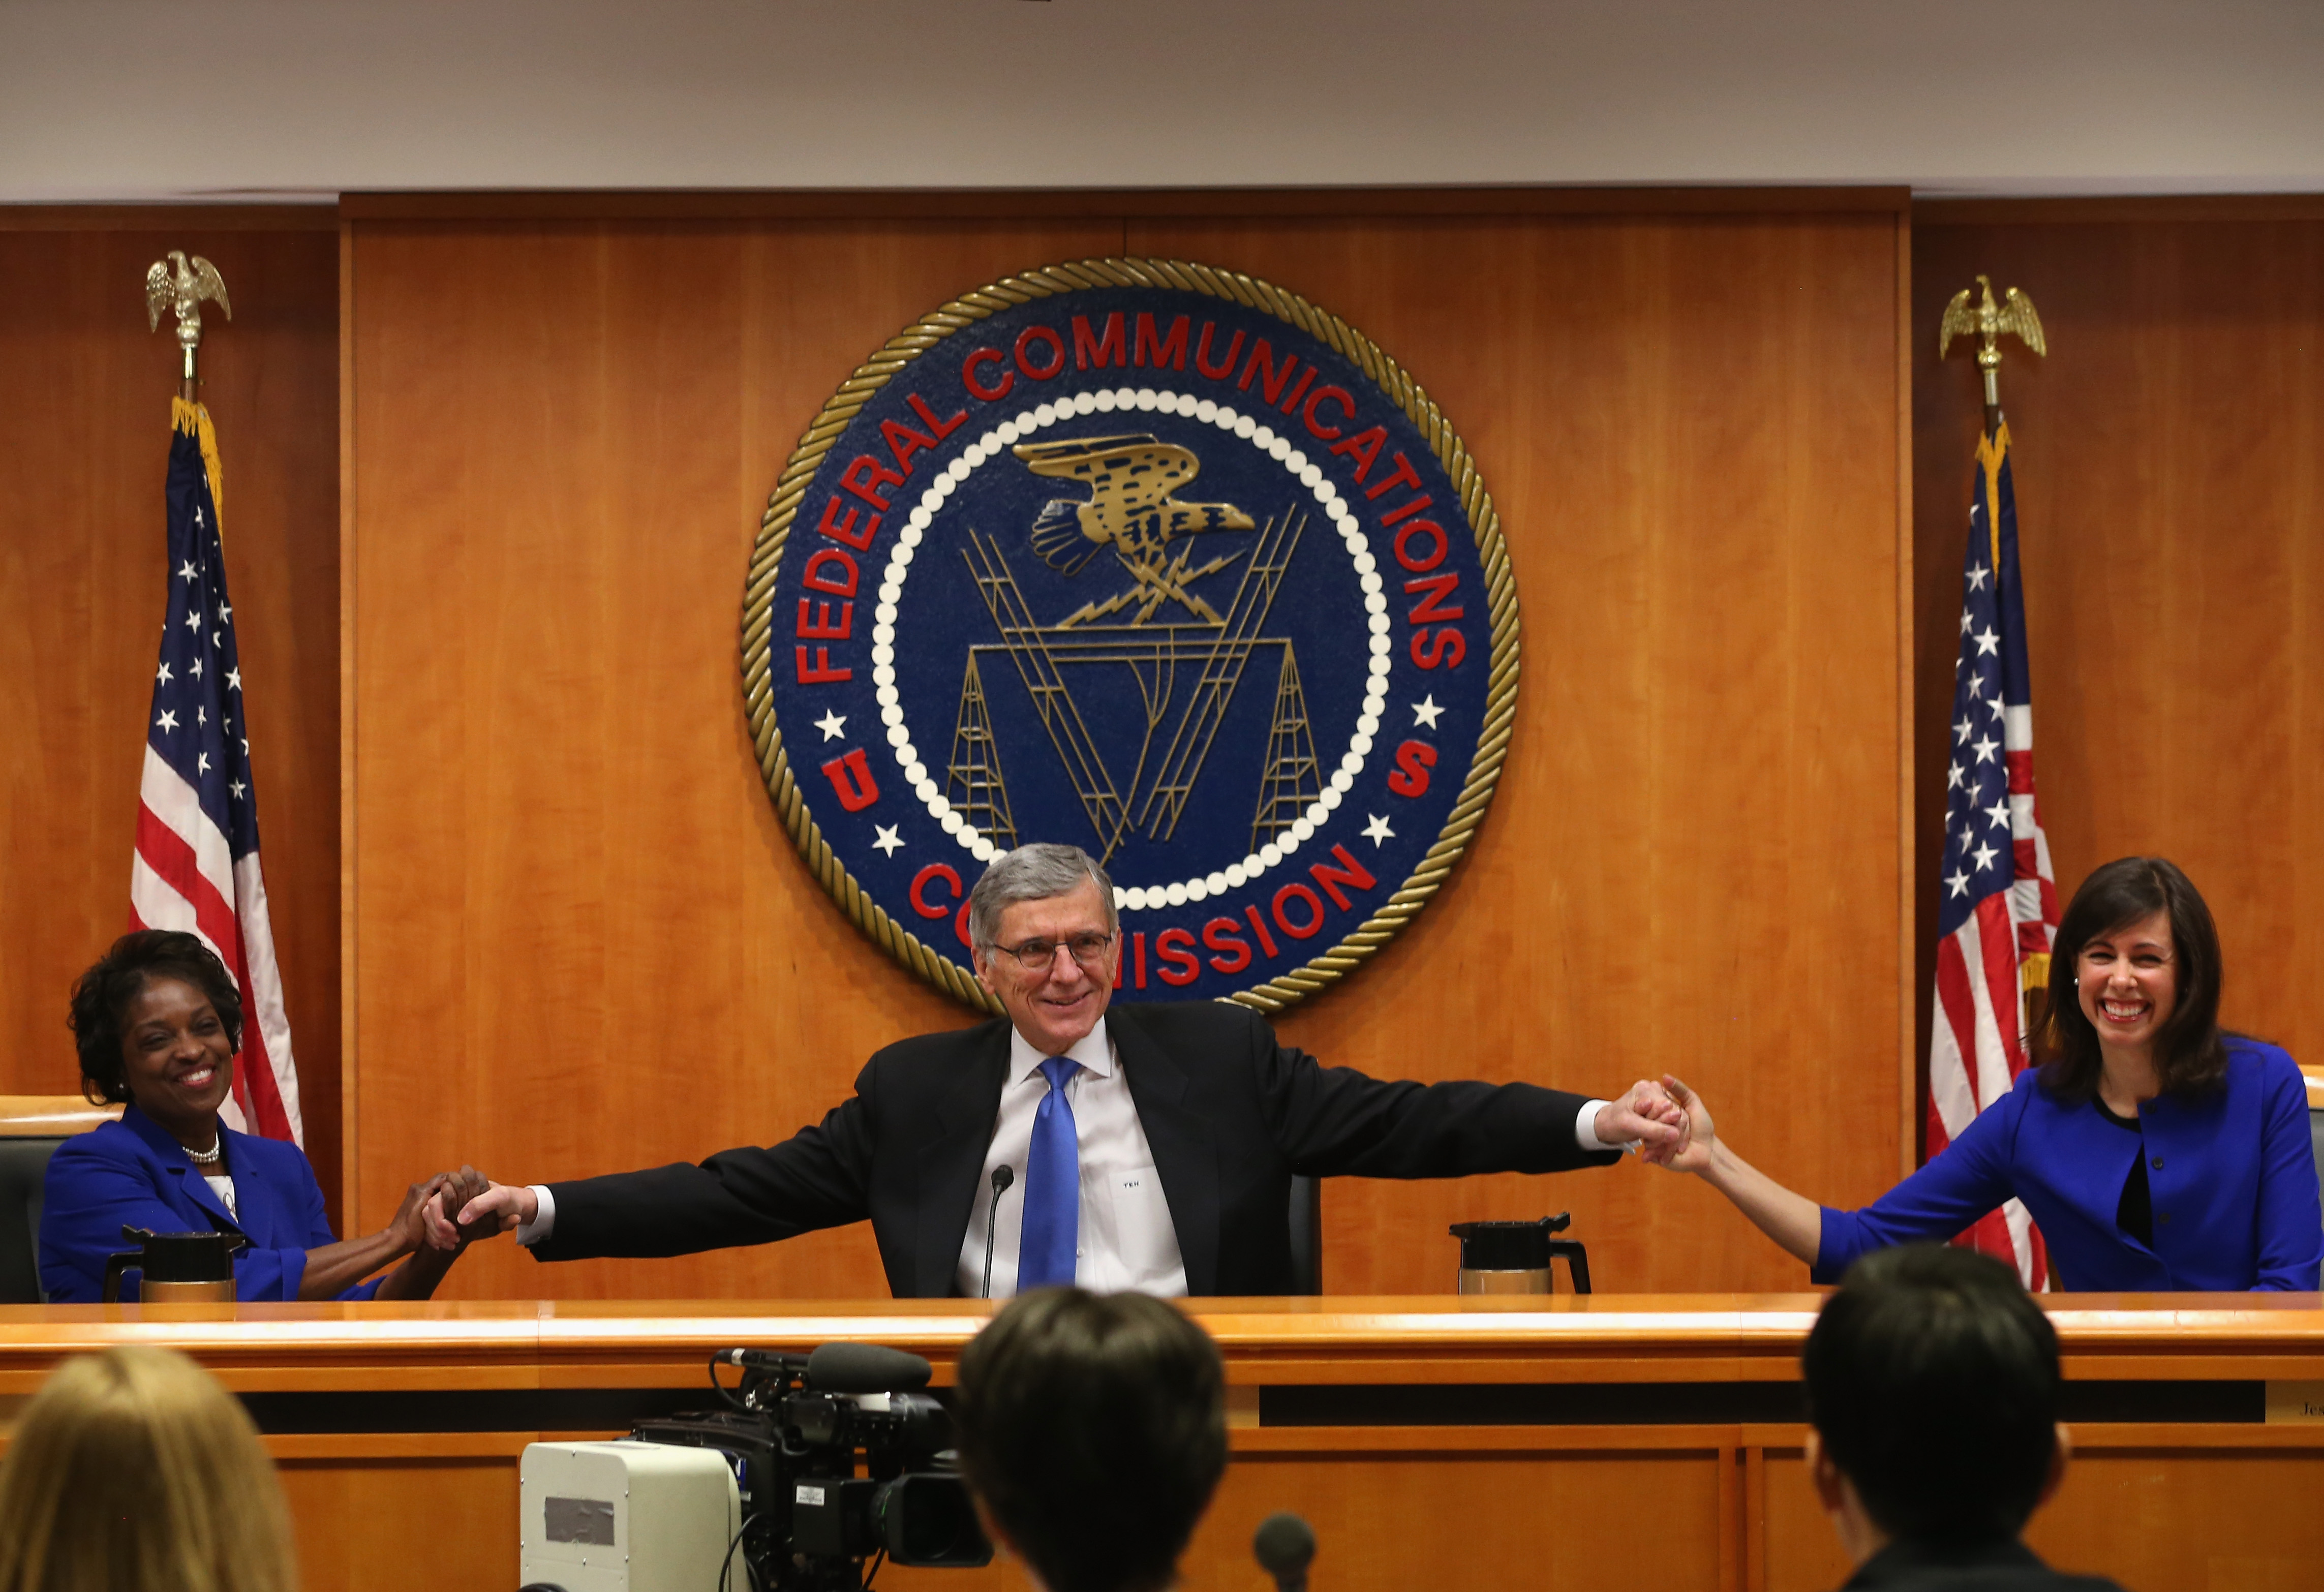 Internet providers now need permission to share or sell your